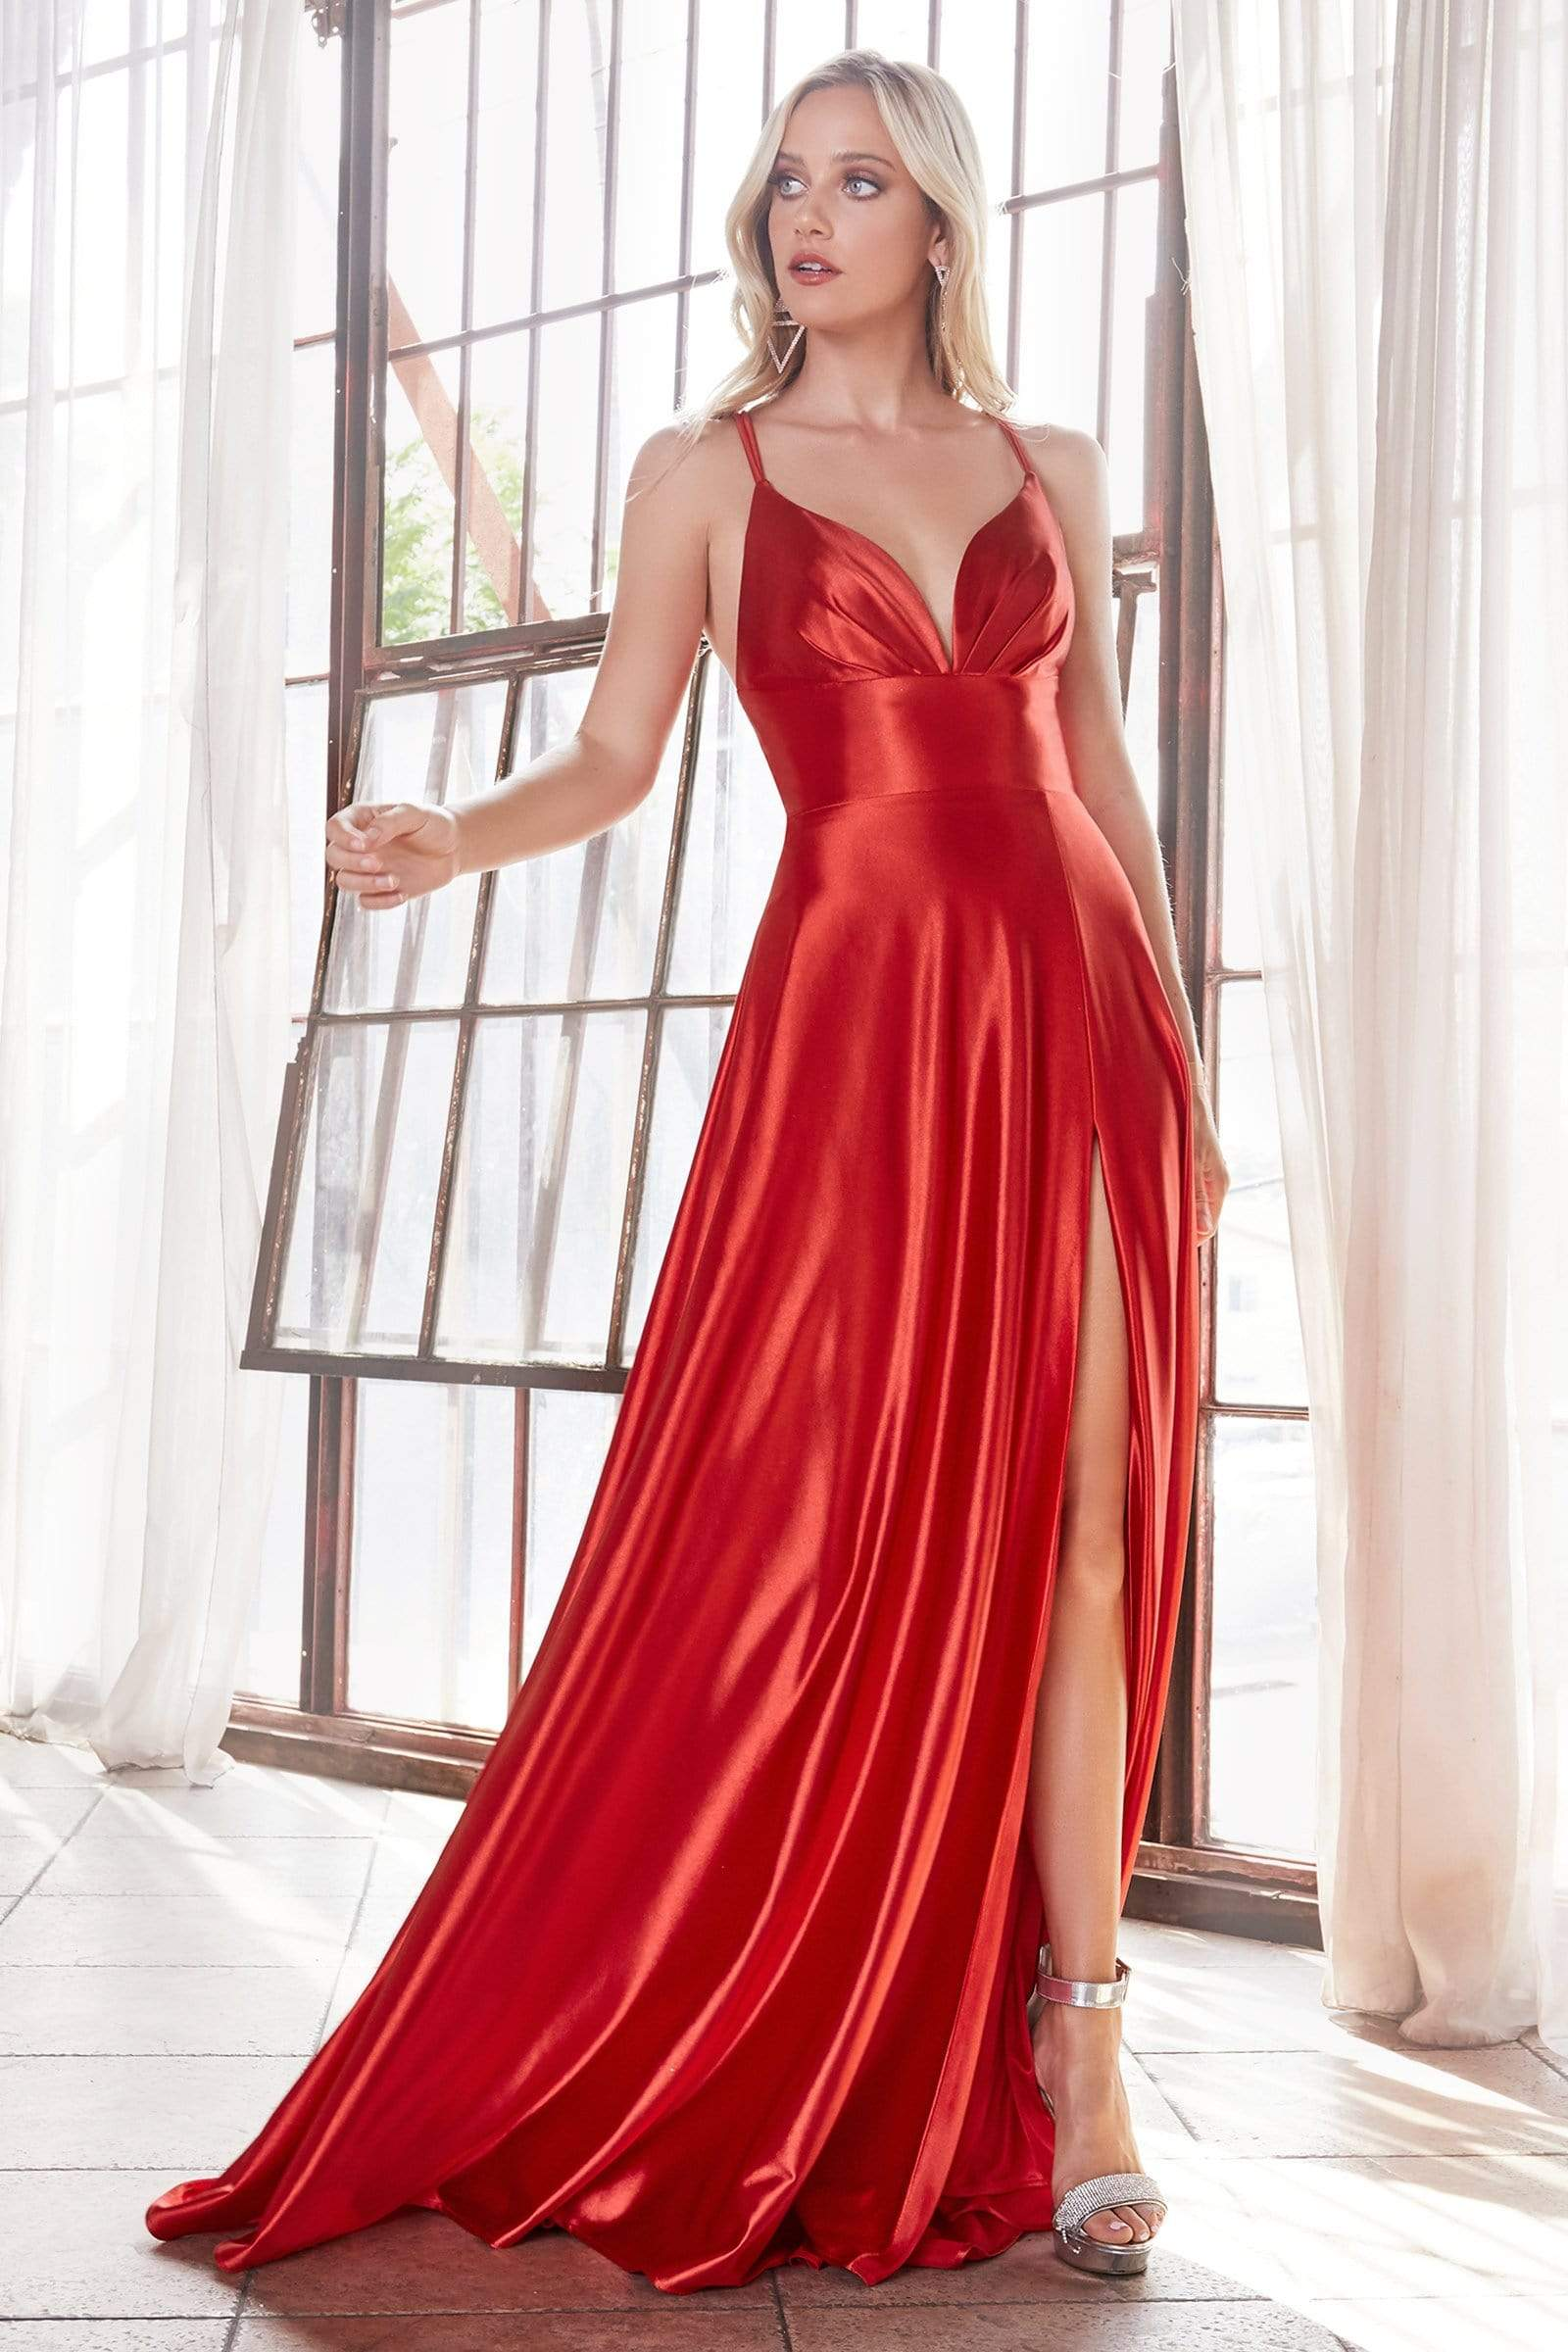 Cinderella Divine - CD903 Deep V-neck Satin A-line Gown Prom Dresses 2 / Red